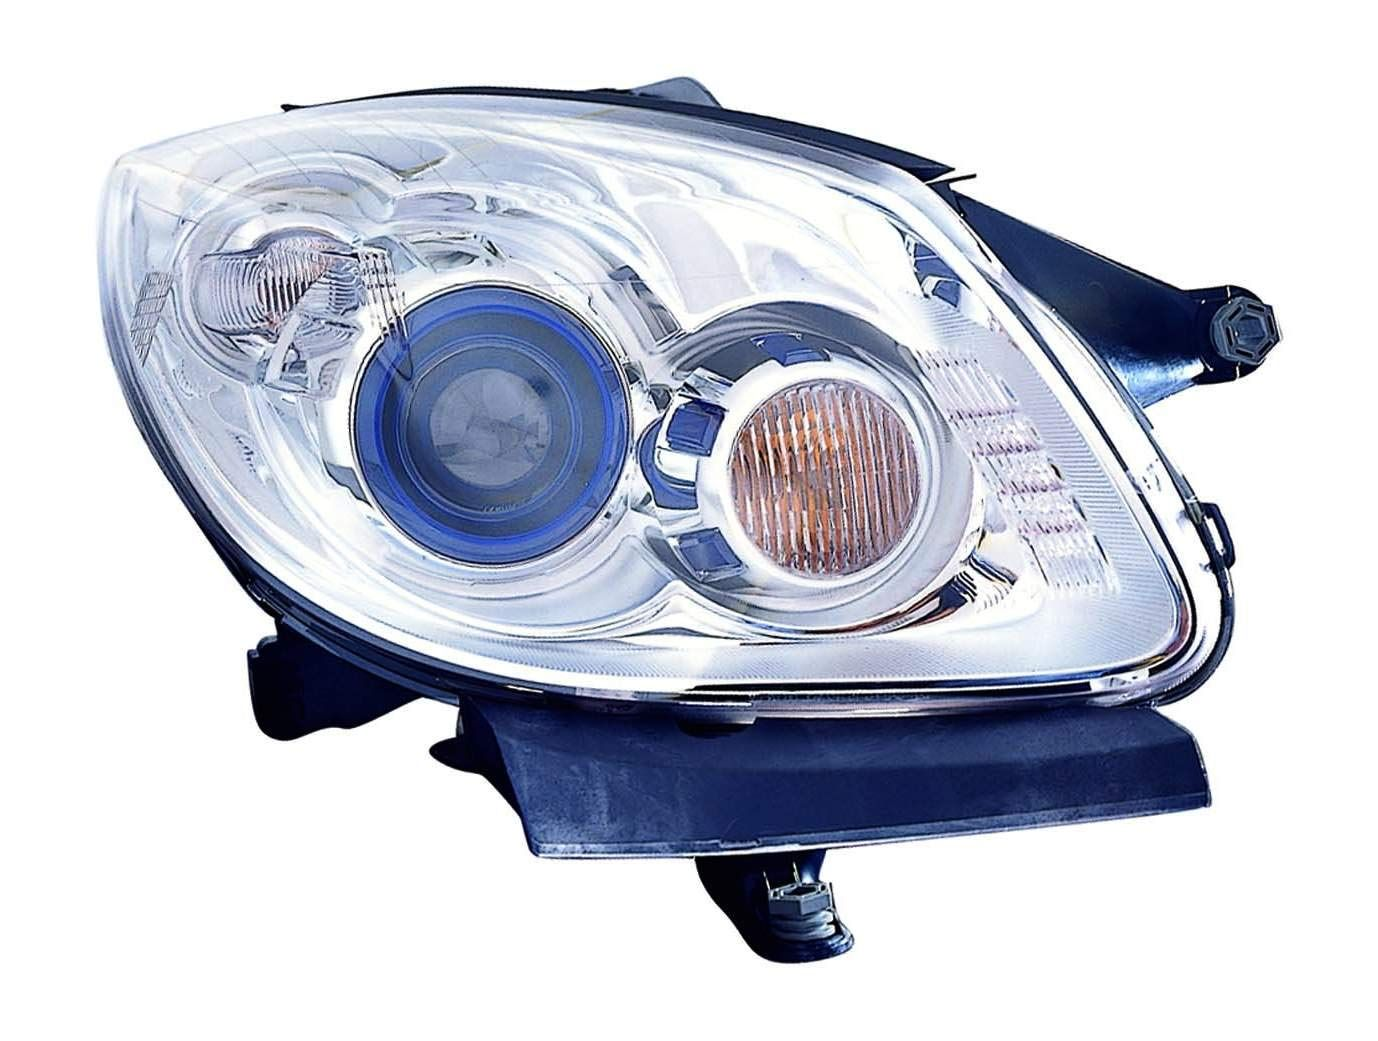 Depo 336 1118r Ash Headlight Assembly Buick Enclave 08 12 Assembly Without Auto Adjust Passenger Side Check Out This Buick Enclave Headlight Assembly Buick